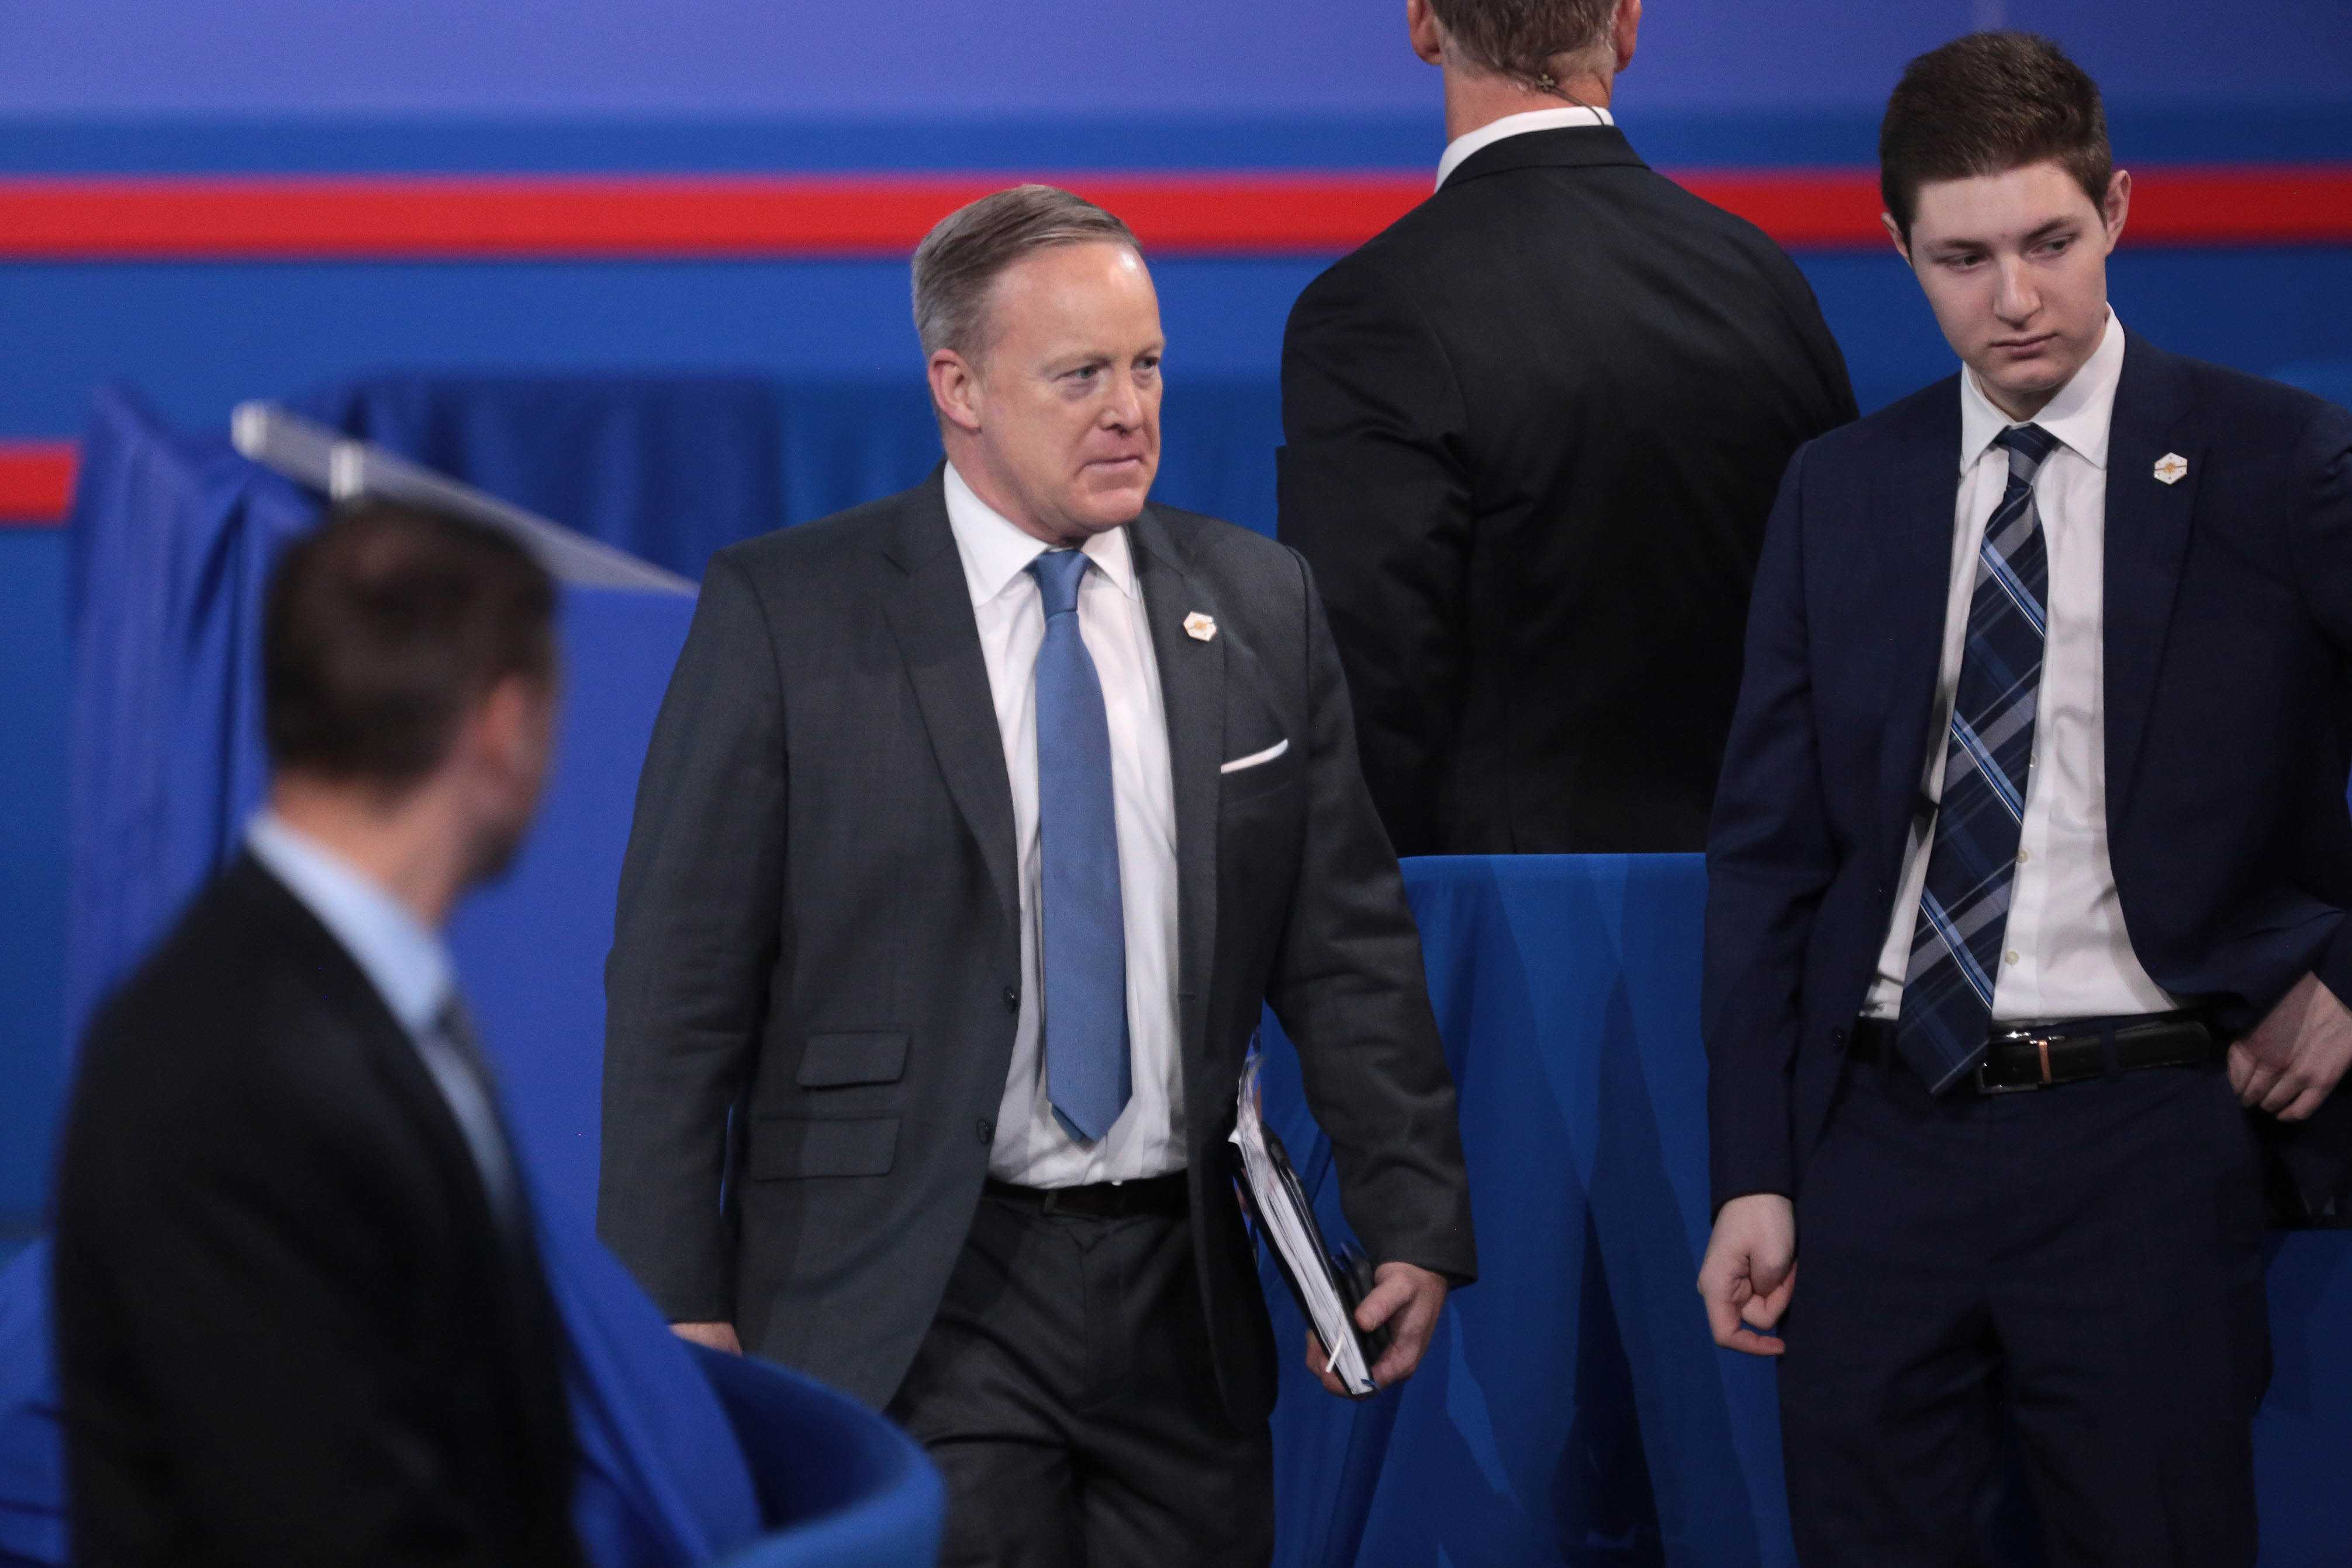 Sean Spicer, Trump's press secretary, has been widelty criticized for his odd remarks.